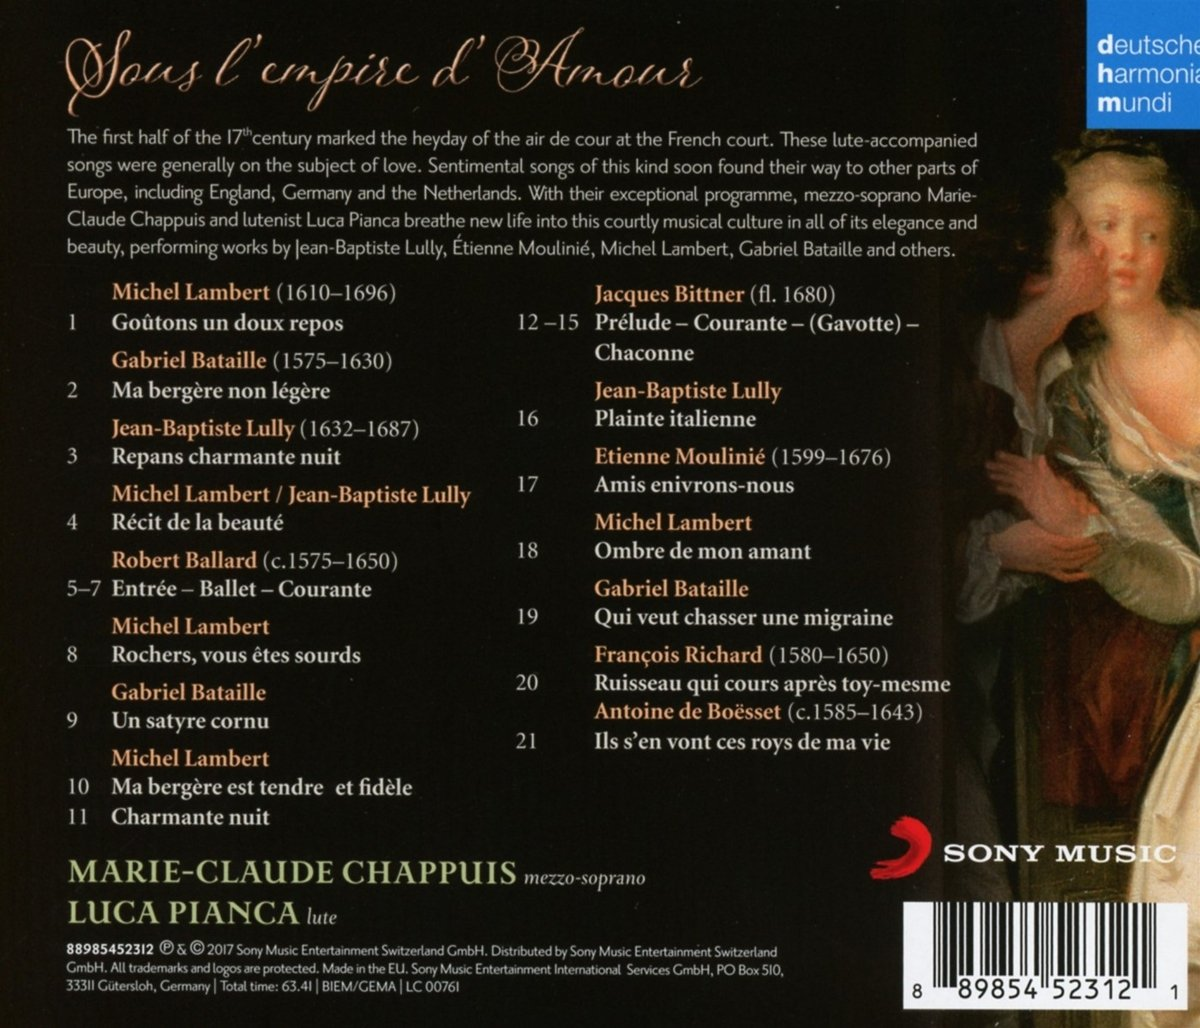 66f0ffd9e5d53 MARIE CLAUDE CHAPPUIS - Sous L Empire D Amour - Amazon.com Music